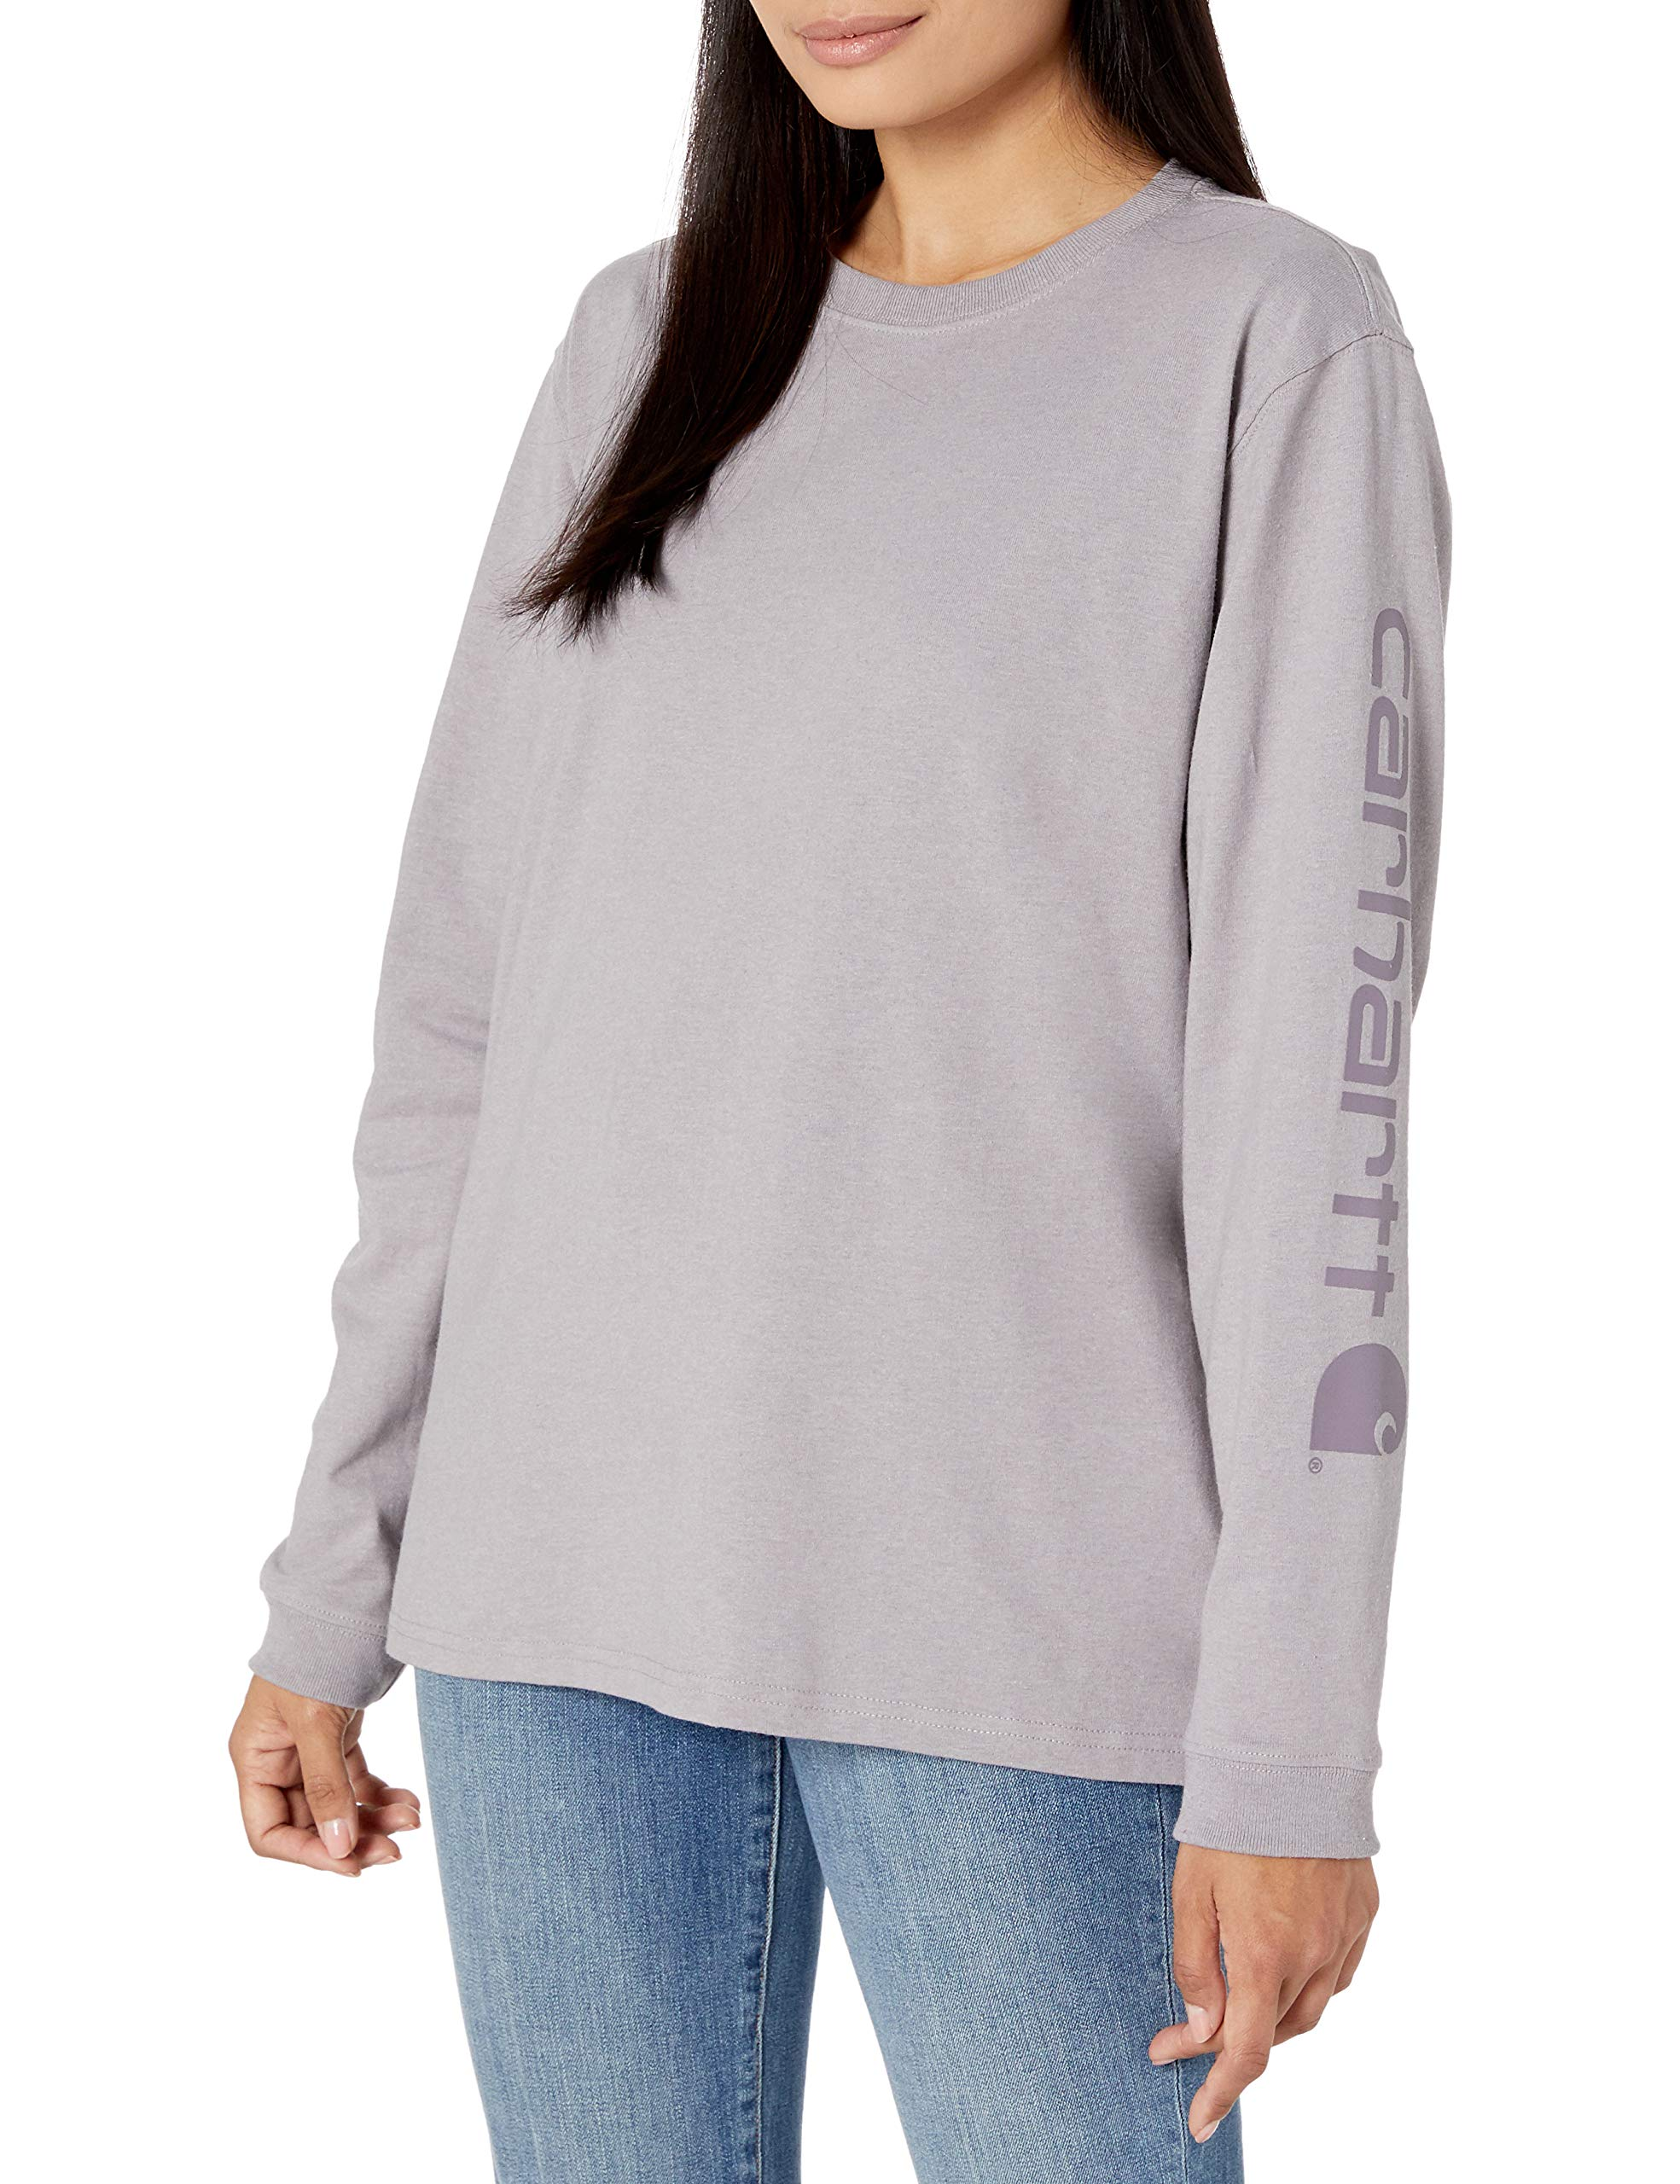 Carhartt Women's Regular Workwear Logo Long Sleeve T-Shirt